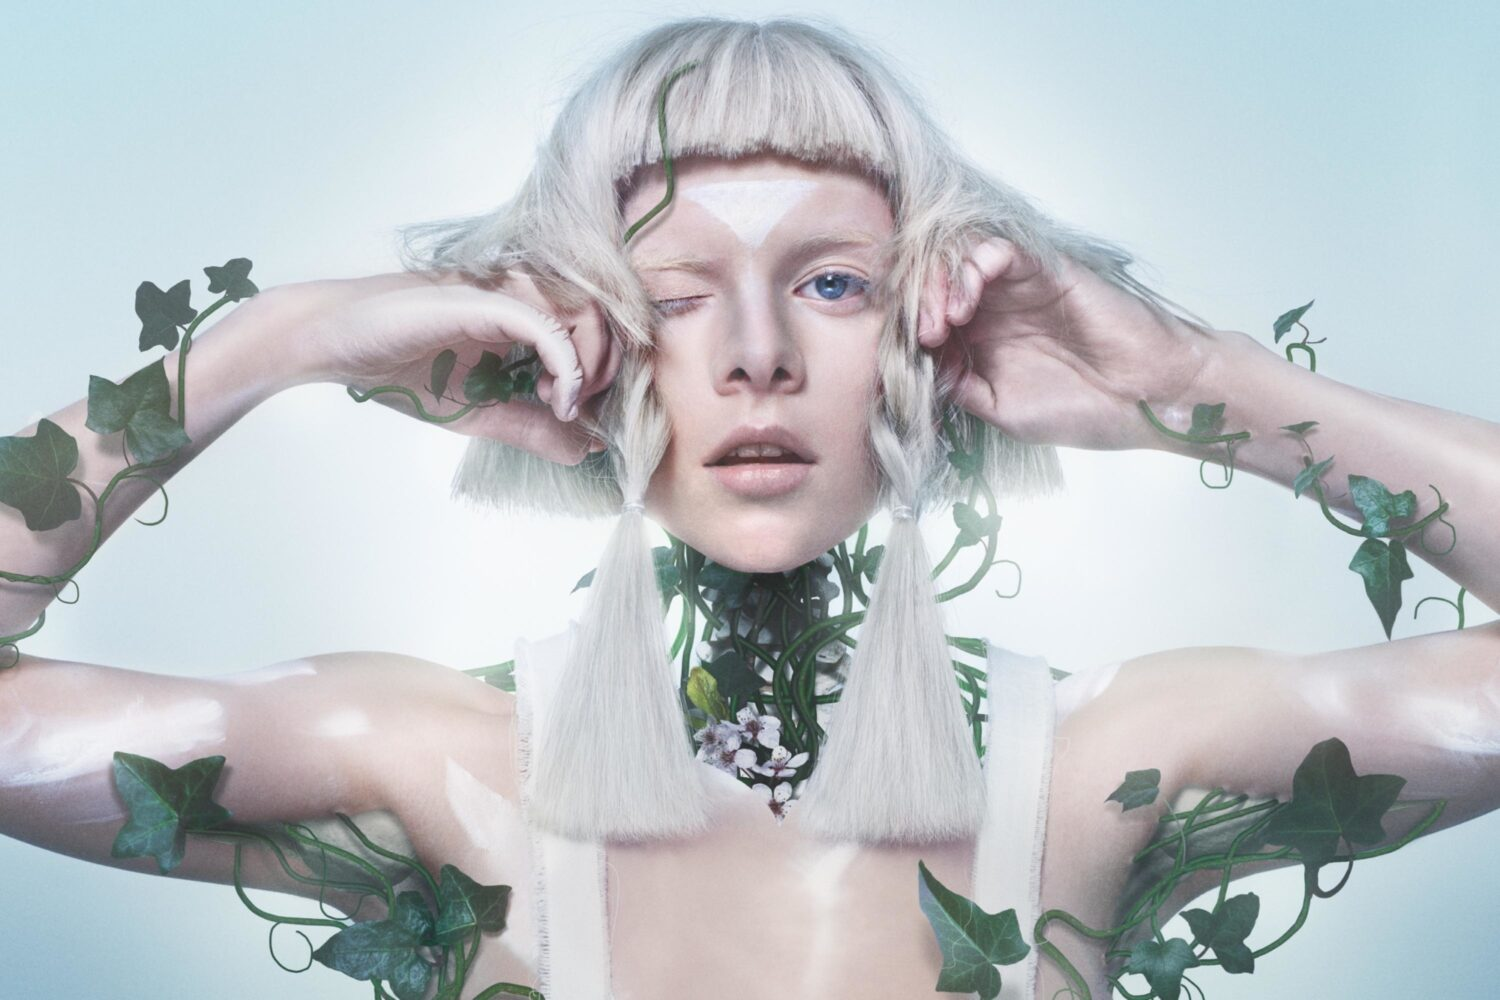 Aurora, Ásgeir, Haiku Hands, Not3s and Black Midi among new names added to Iceland Airwaves 2018 line-up